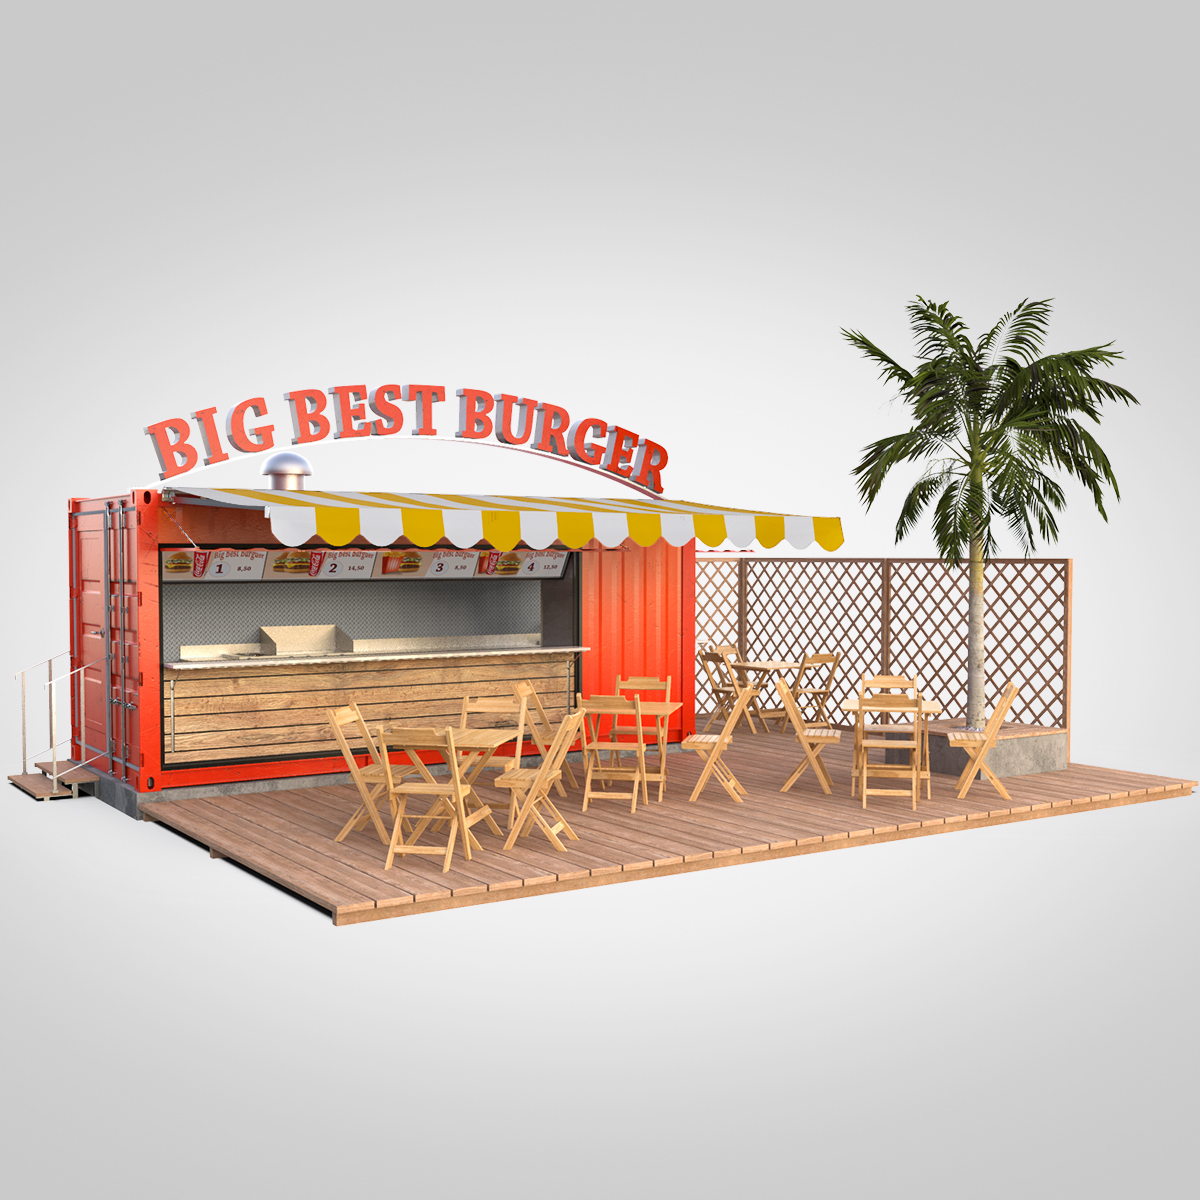 shipping container food stand 3d model max fbx ma mb texture obj 278558